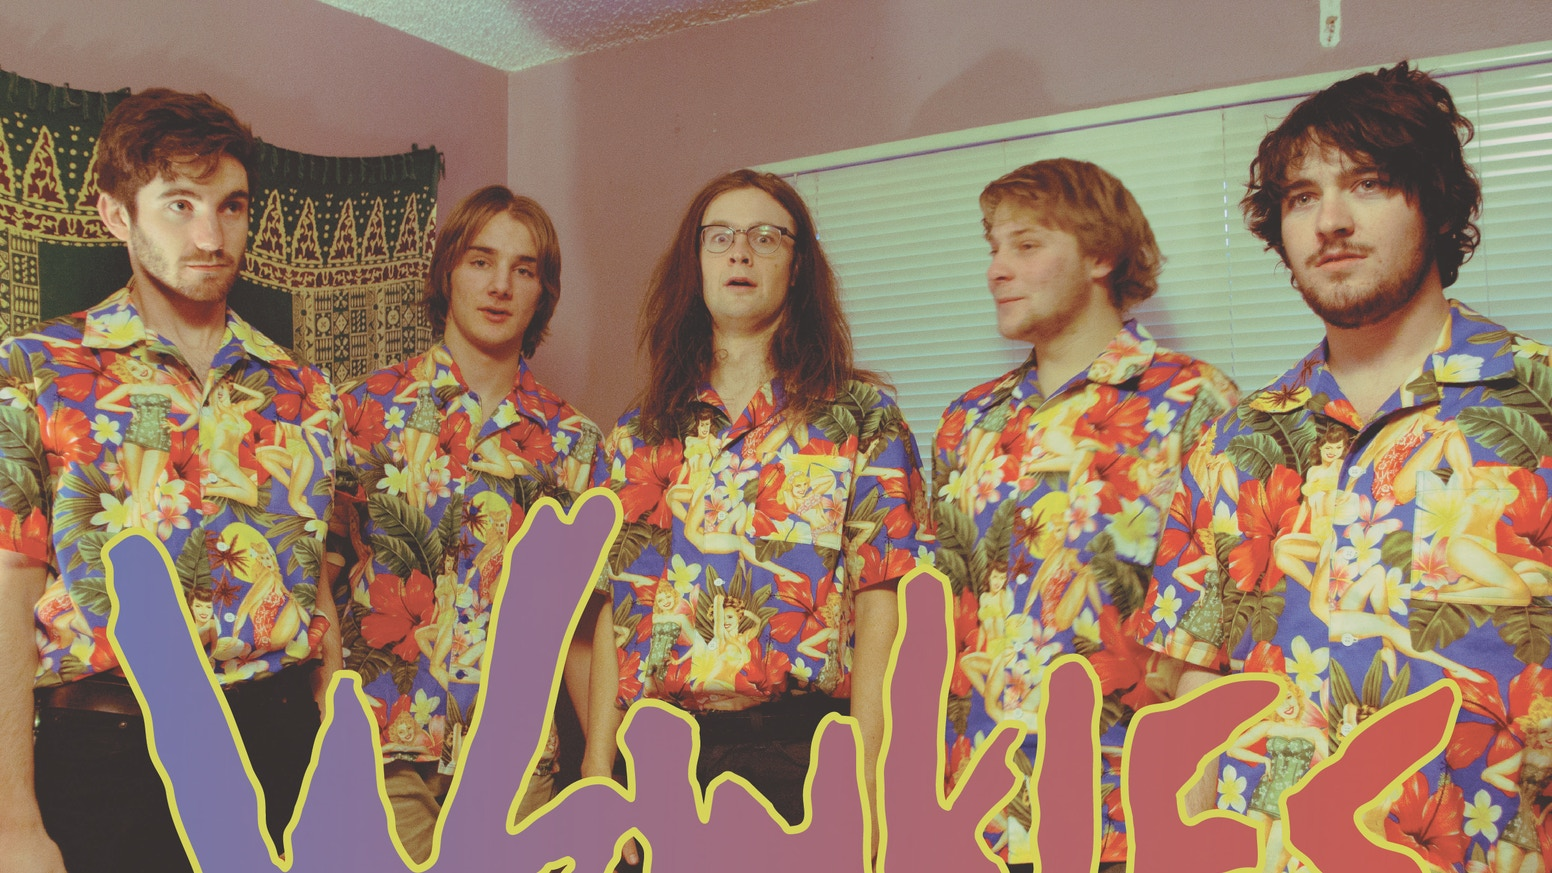 Wrinkles Rock! Help them to record their debut album.